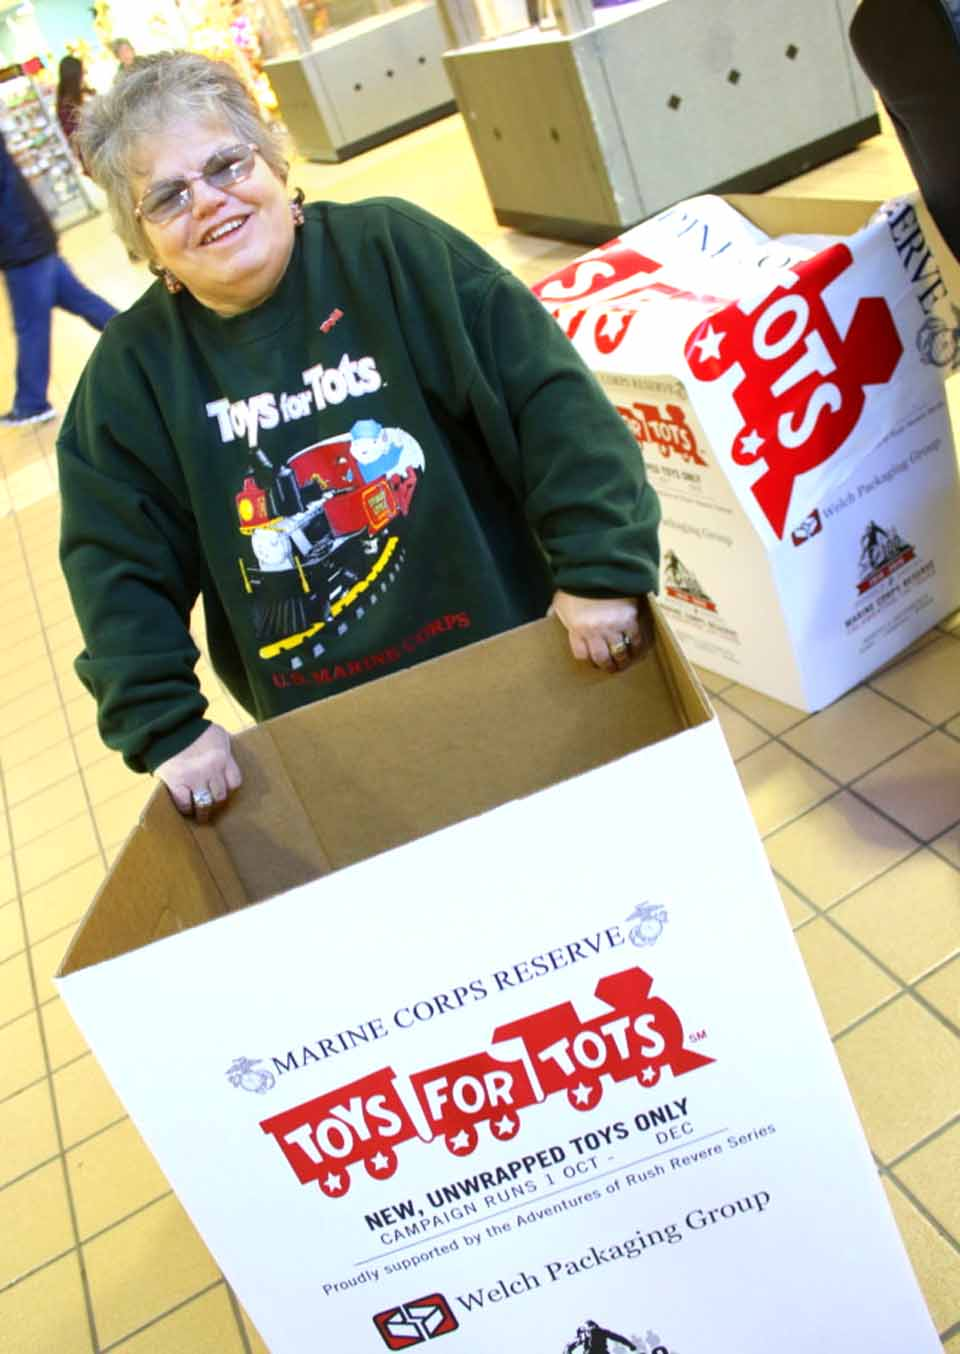 Form 501c3 Toys For Tots : Toys for tots boxes out sign ups required allotsego